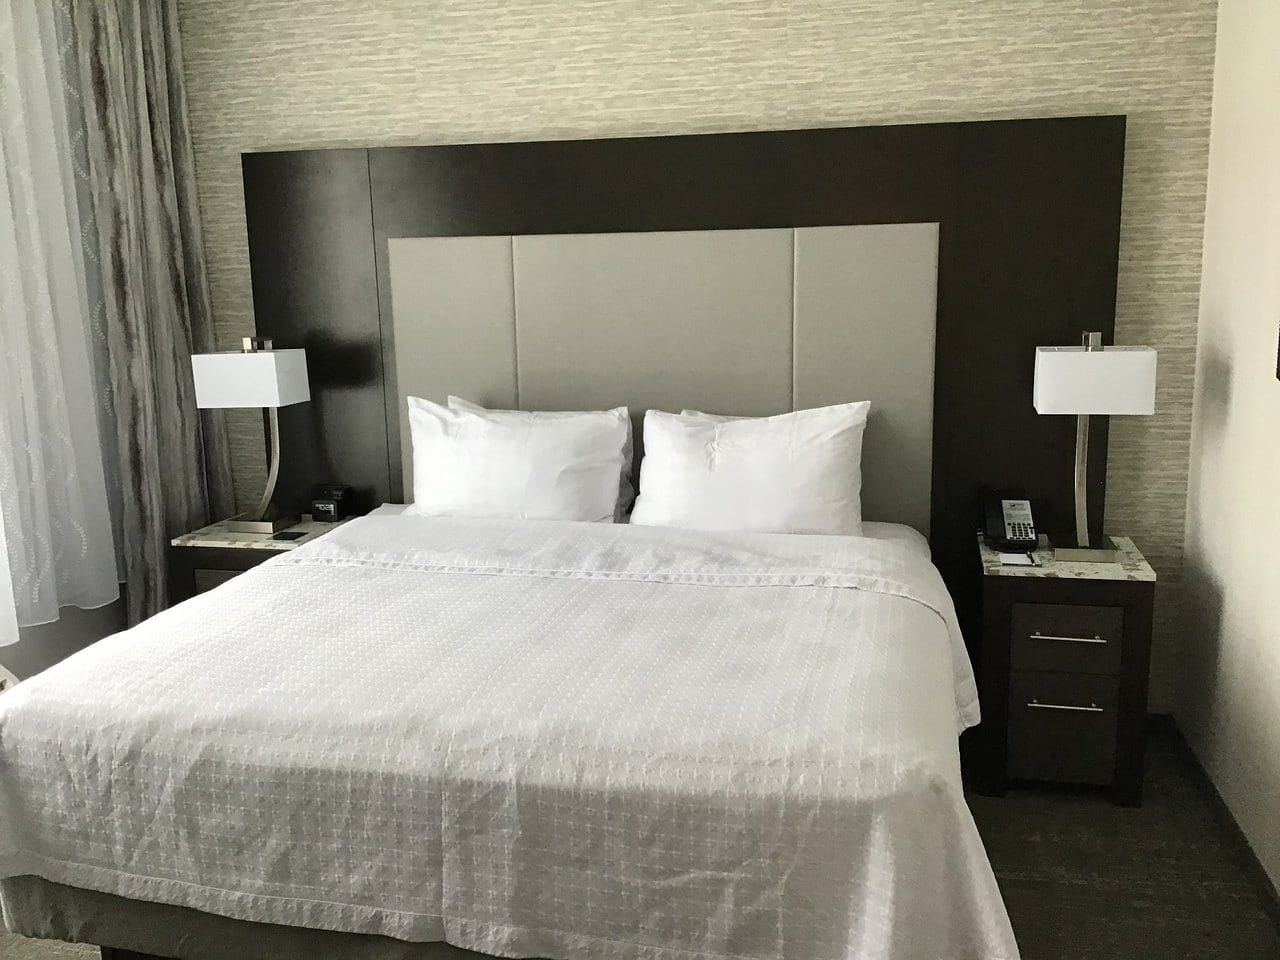 Room at Homewood Suites by Hilton Steamboat Springs.